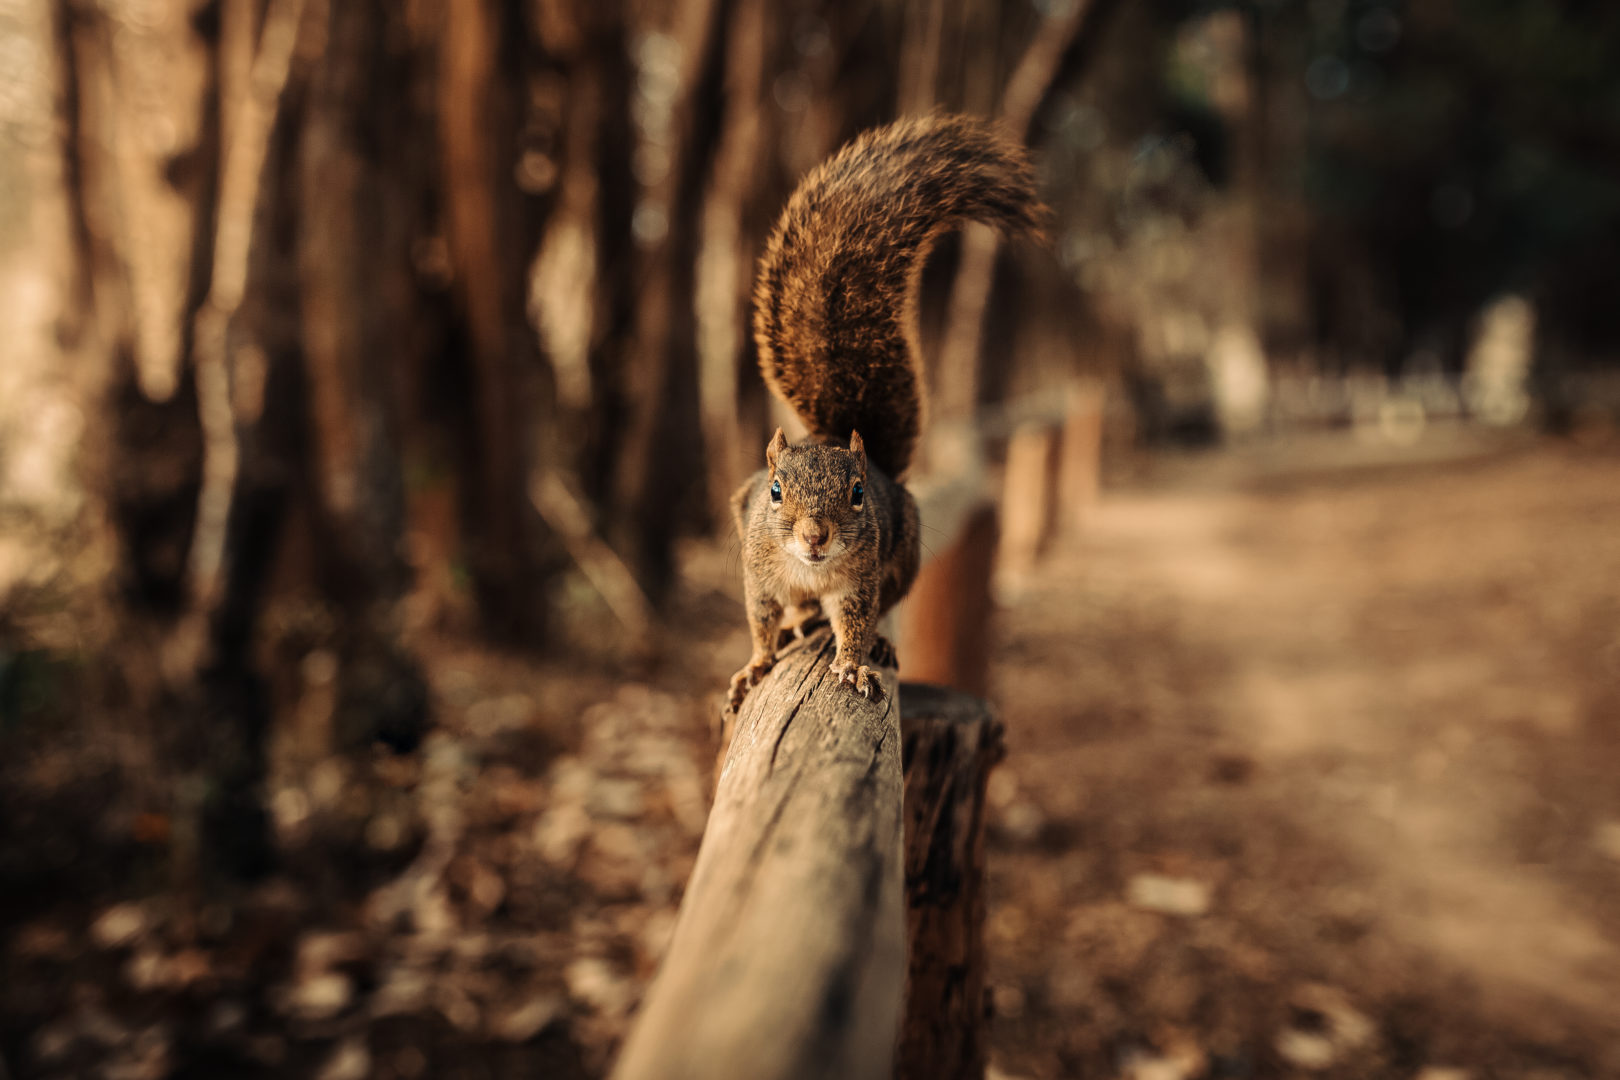 Squirrel standing on wooden fence in forest